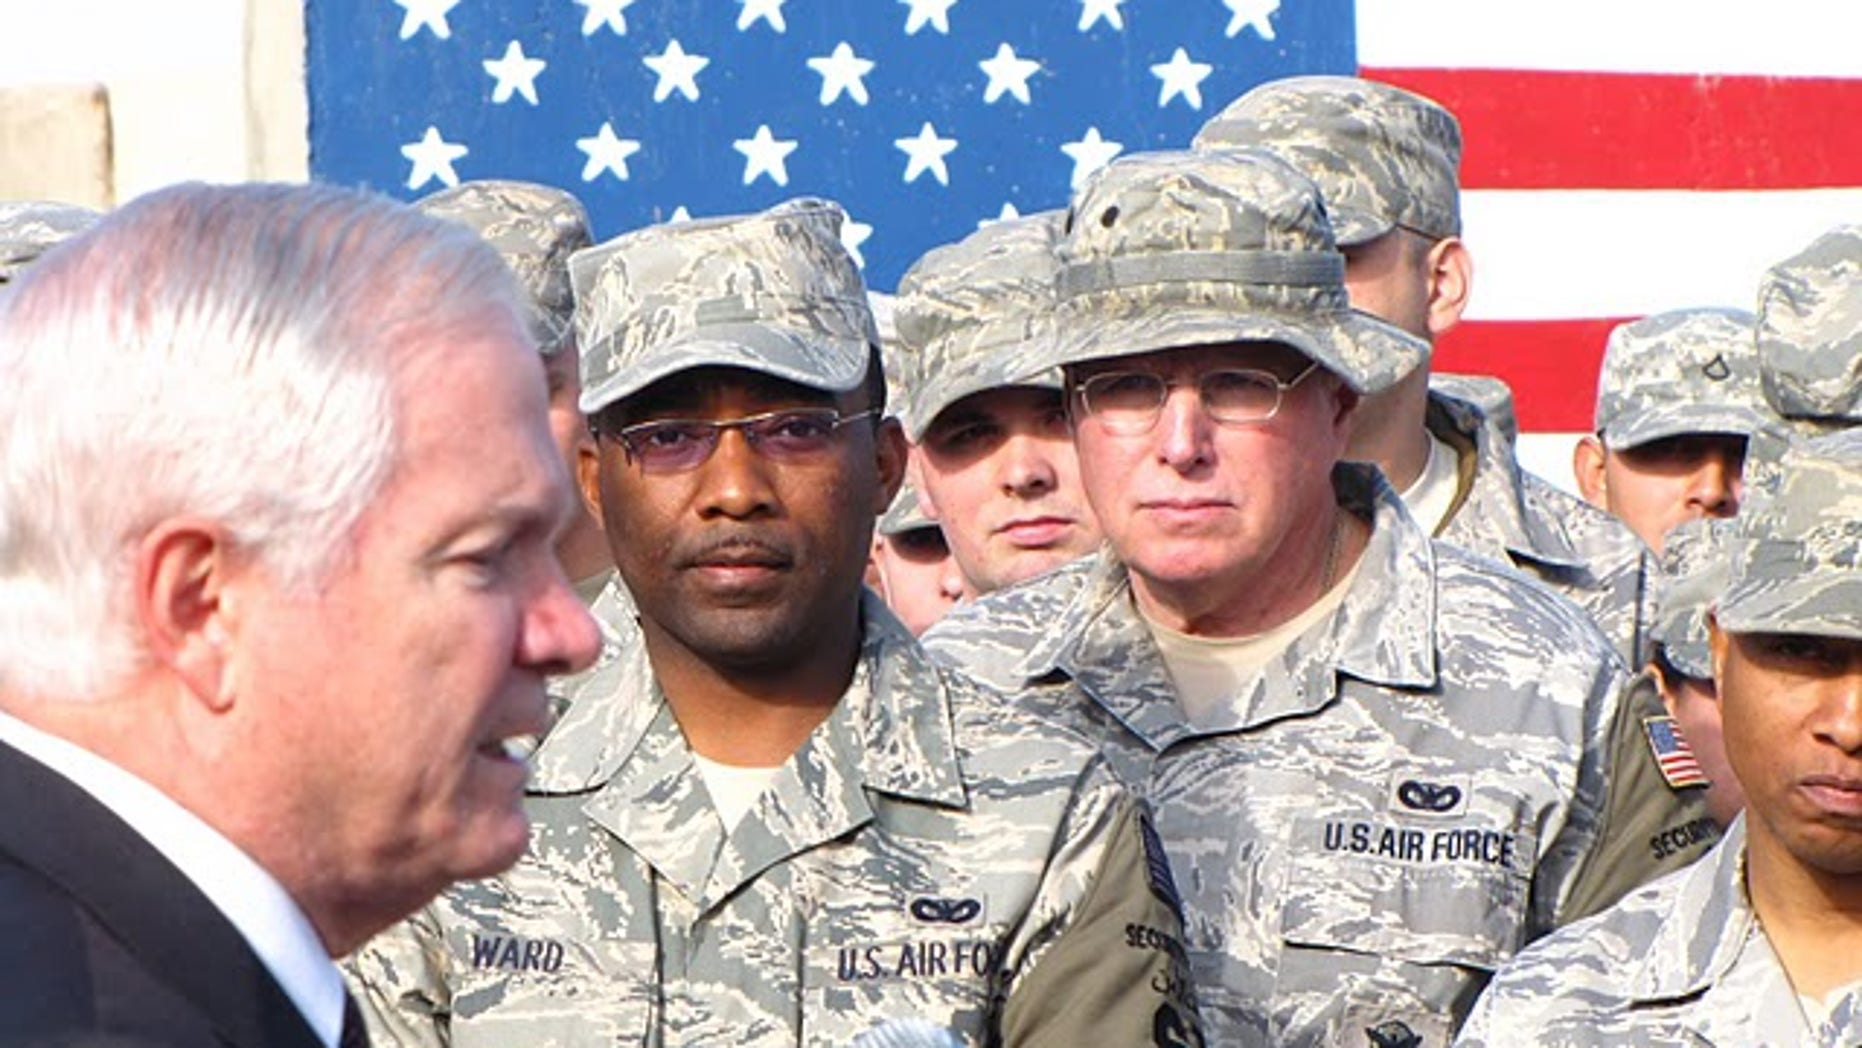 Fox News file photo, Secretary Gates with troops